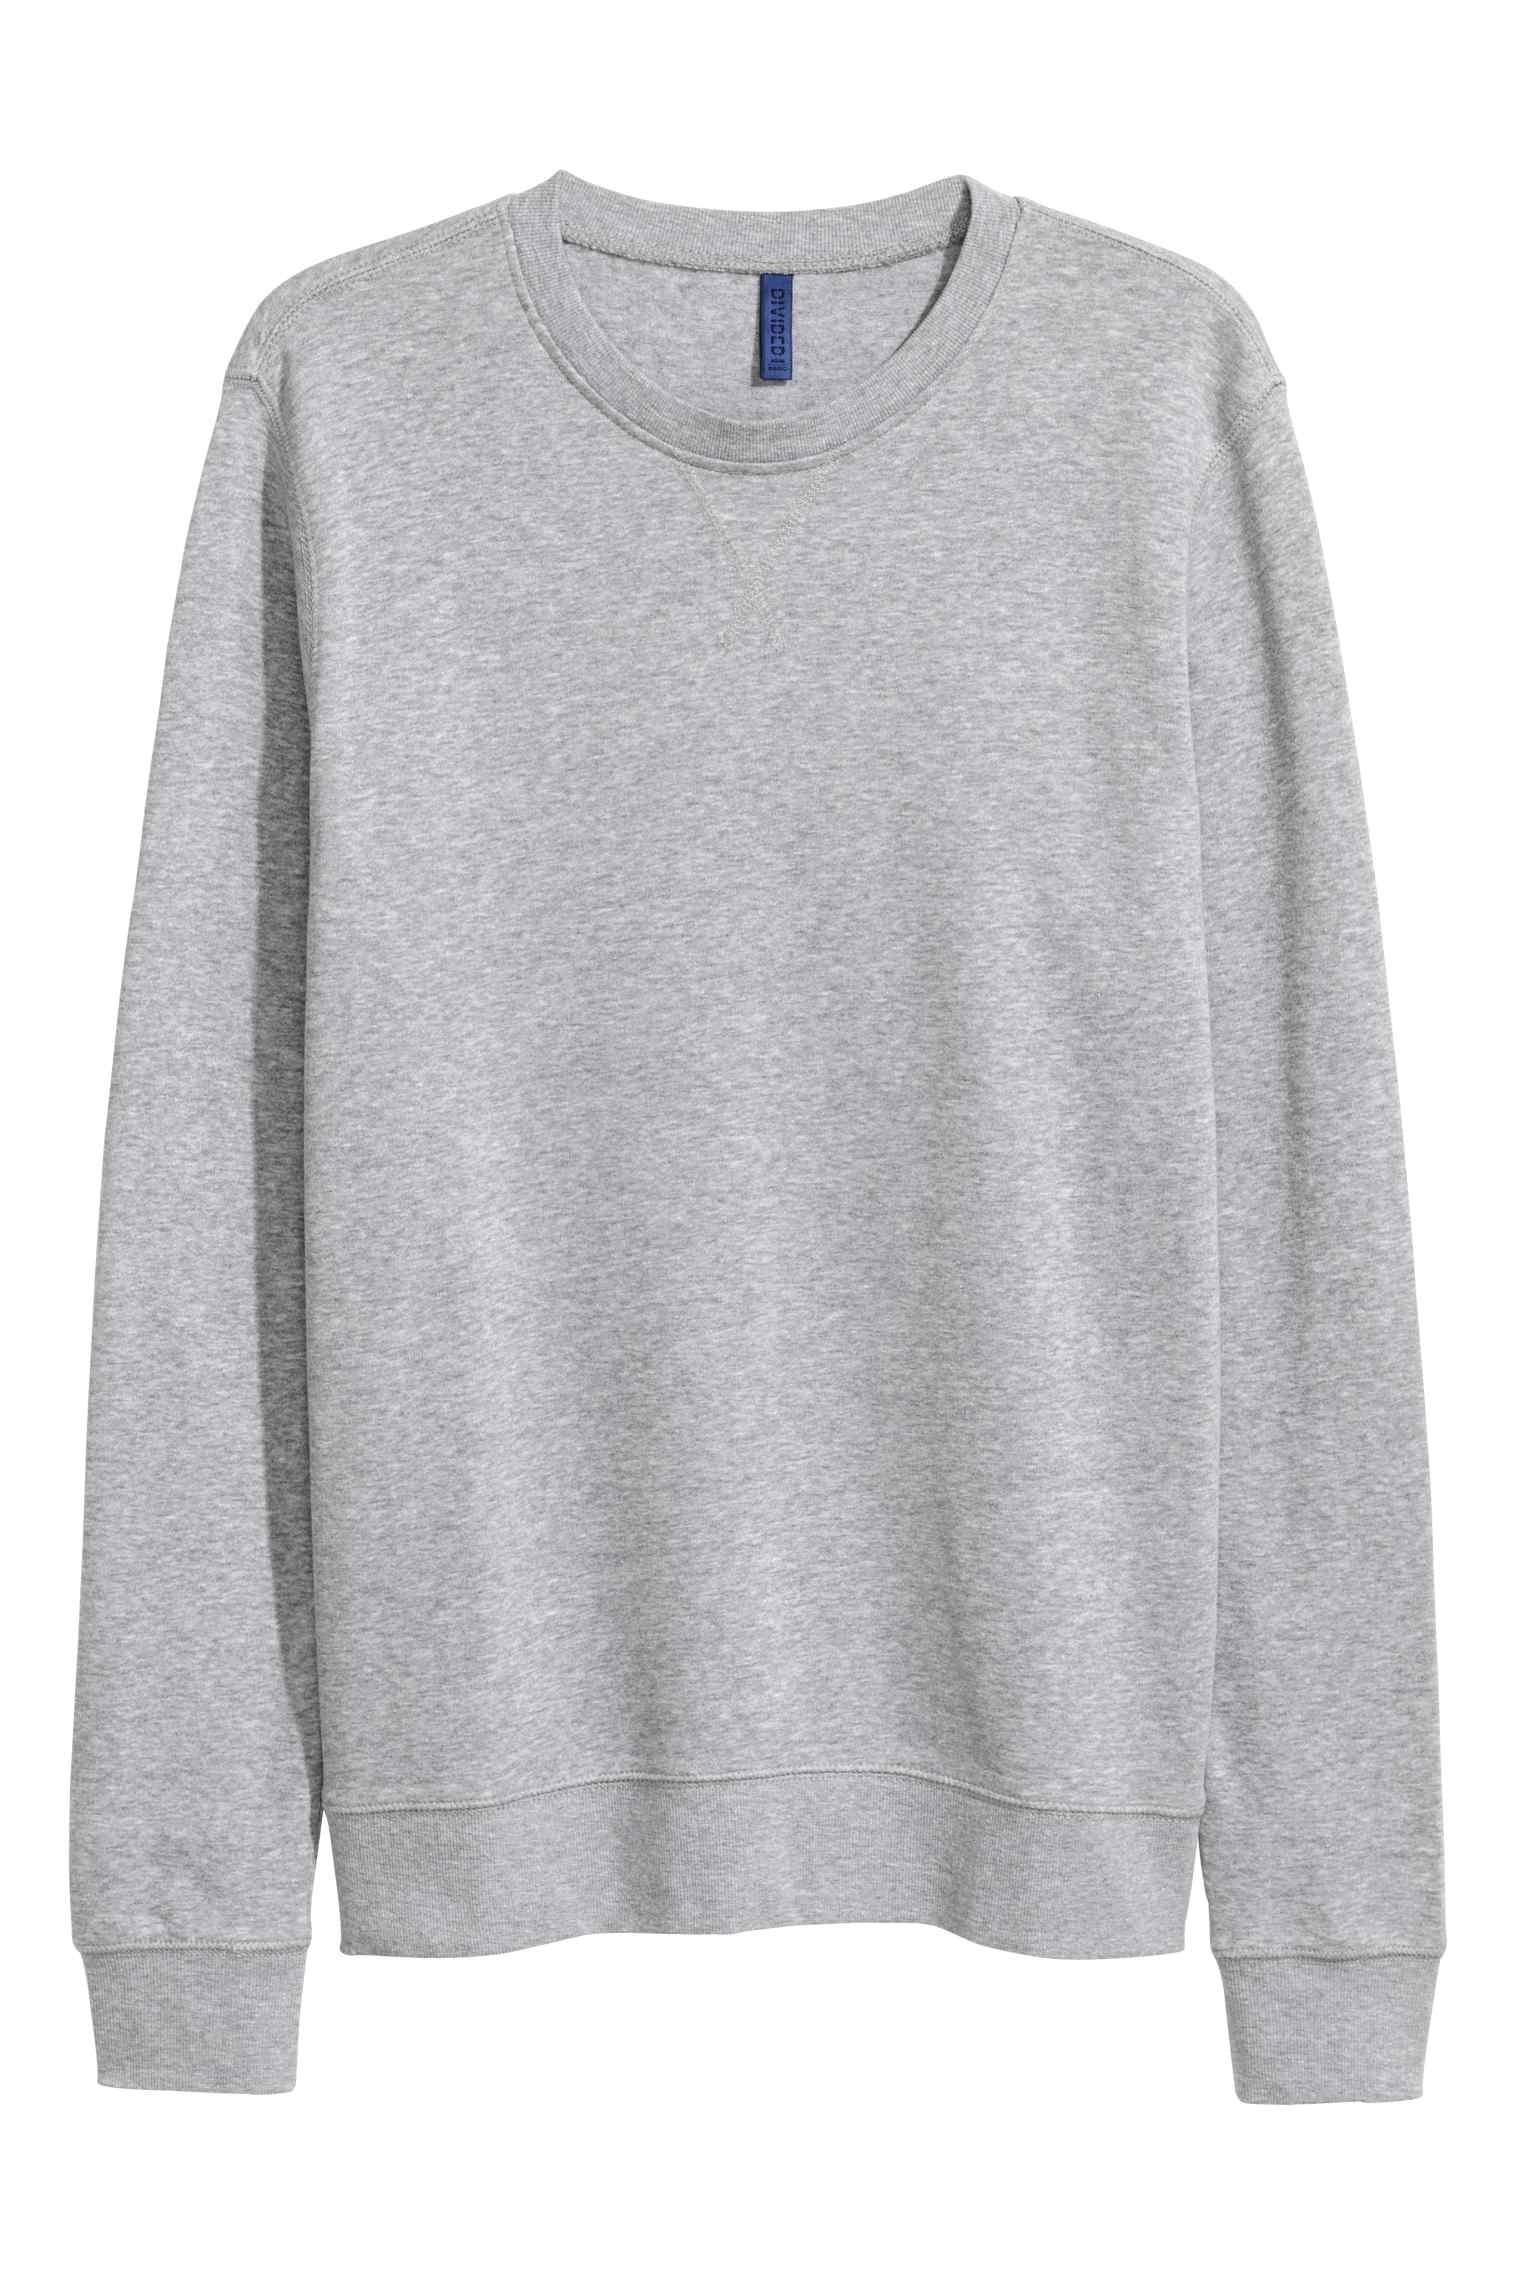 Heather Grey Fleece Solid Sweatshirt For Men